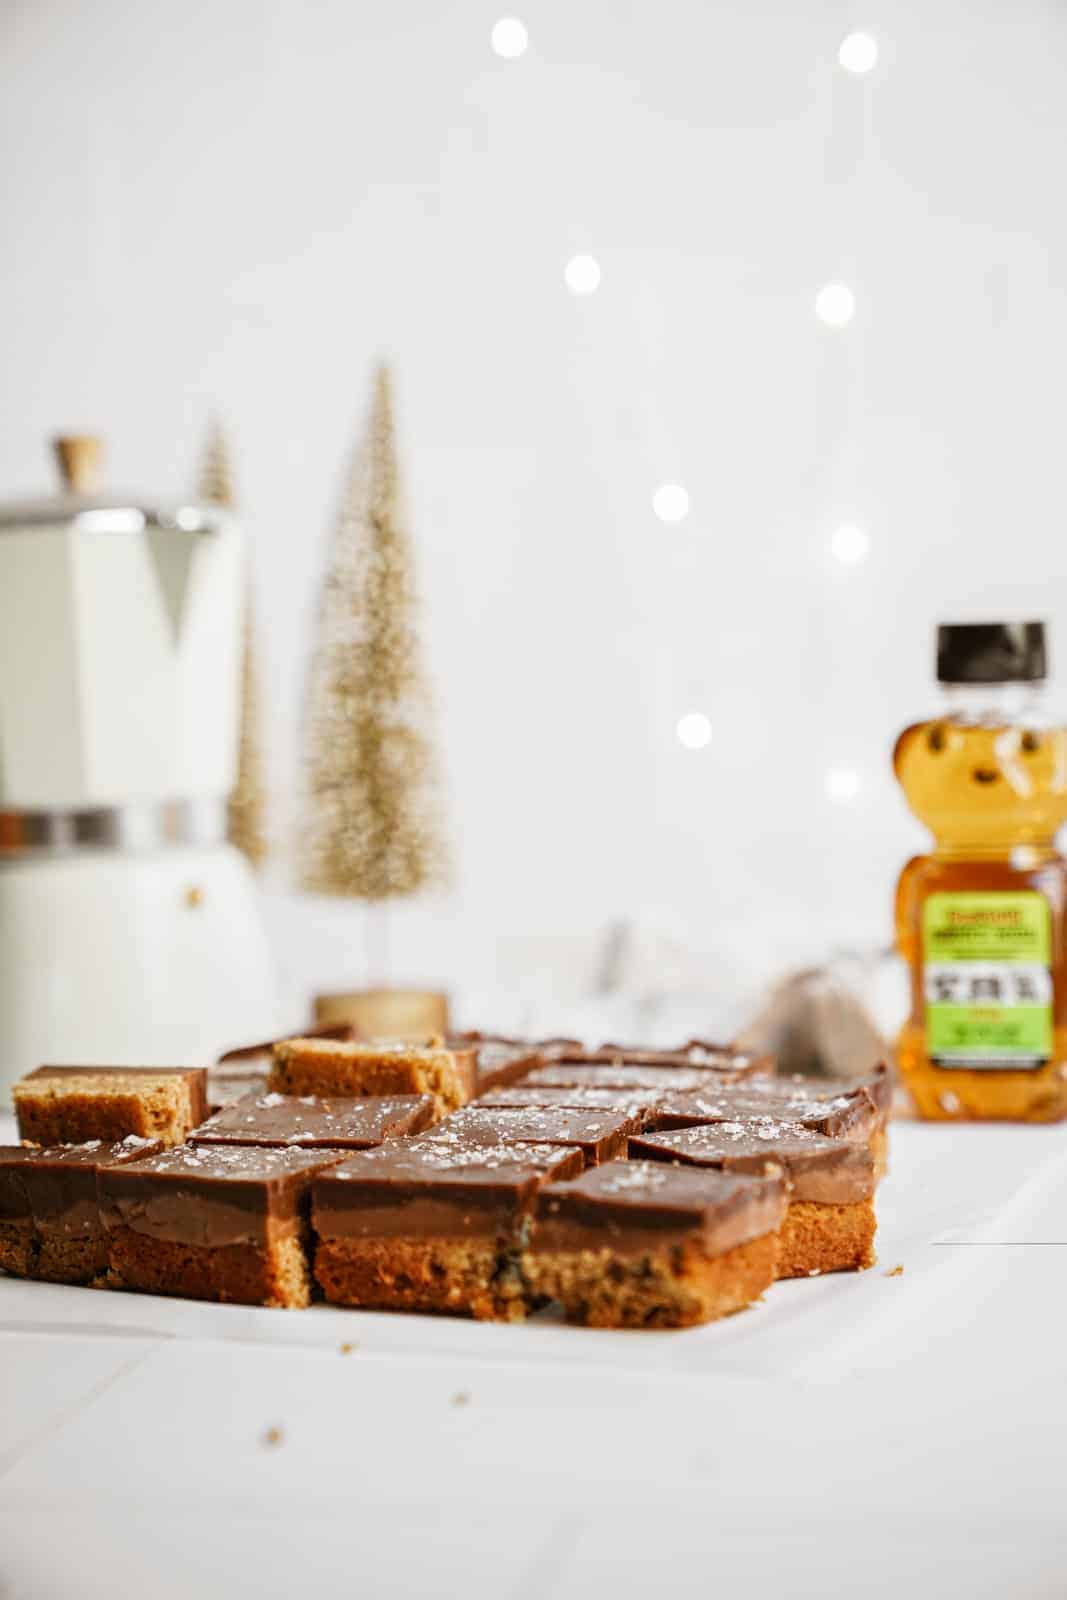 Caramel pretzel bars on a countertop with holiday backdrop, next to a BeeMaid honey container.